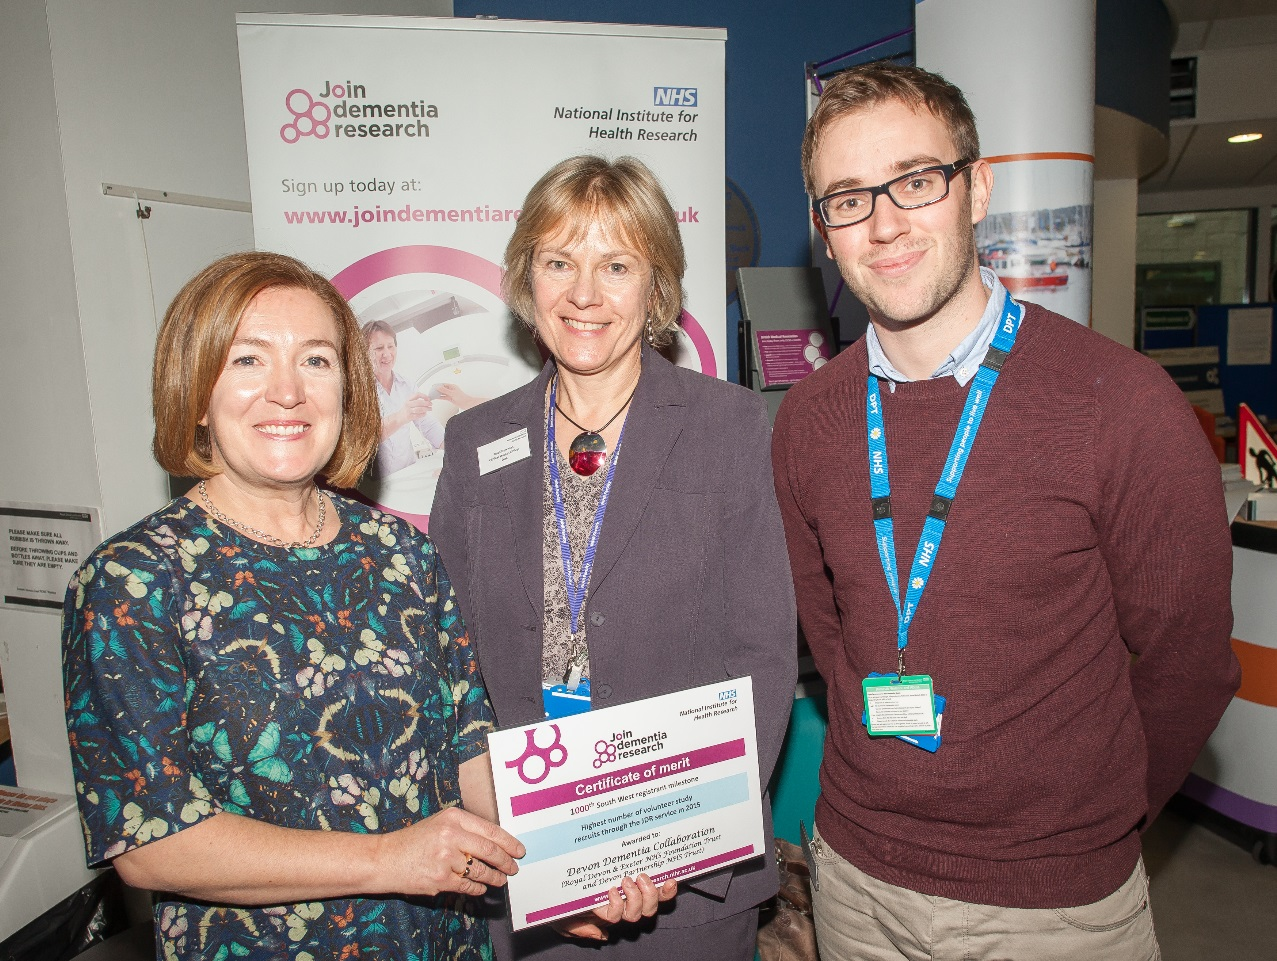 """Pictured above is Dr Ruth Newman and Jon Richards of Devon Partnership NHS Trust when presented with an award last year for successful recruitment of patients through the Devon Dementia Collaboration to research studies in the South West. <a href=""""http://www.grw.photography"""" target=""""_blank"""">GRW Photography</a>"""